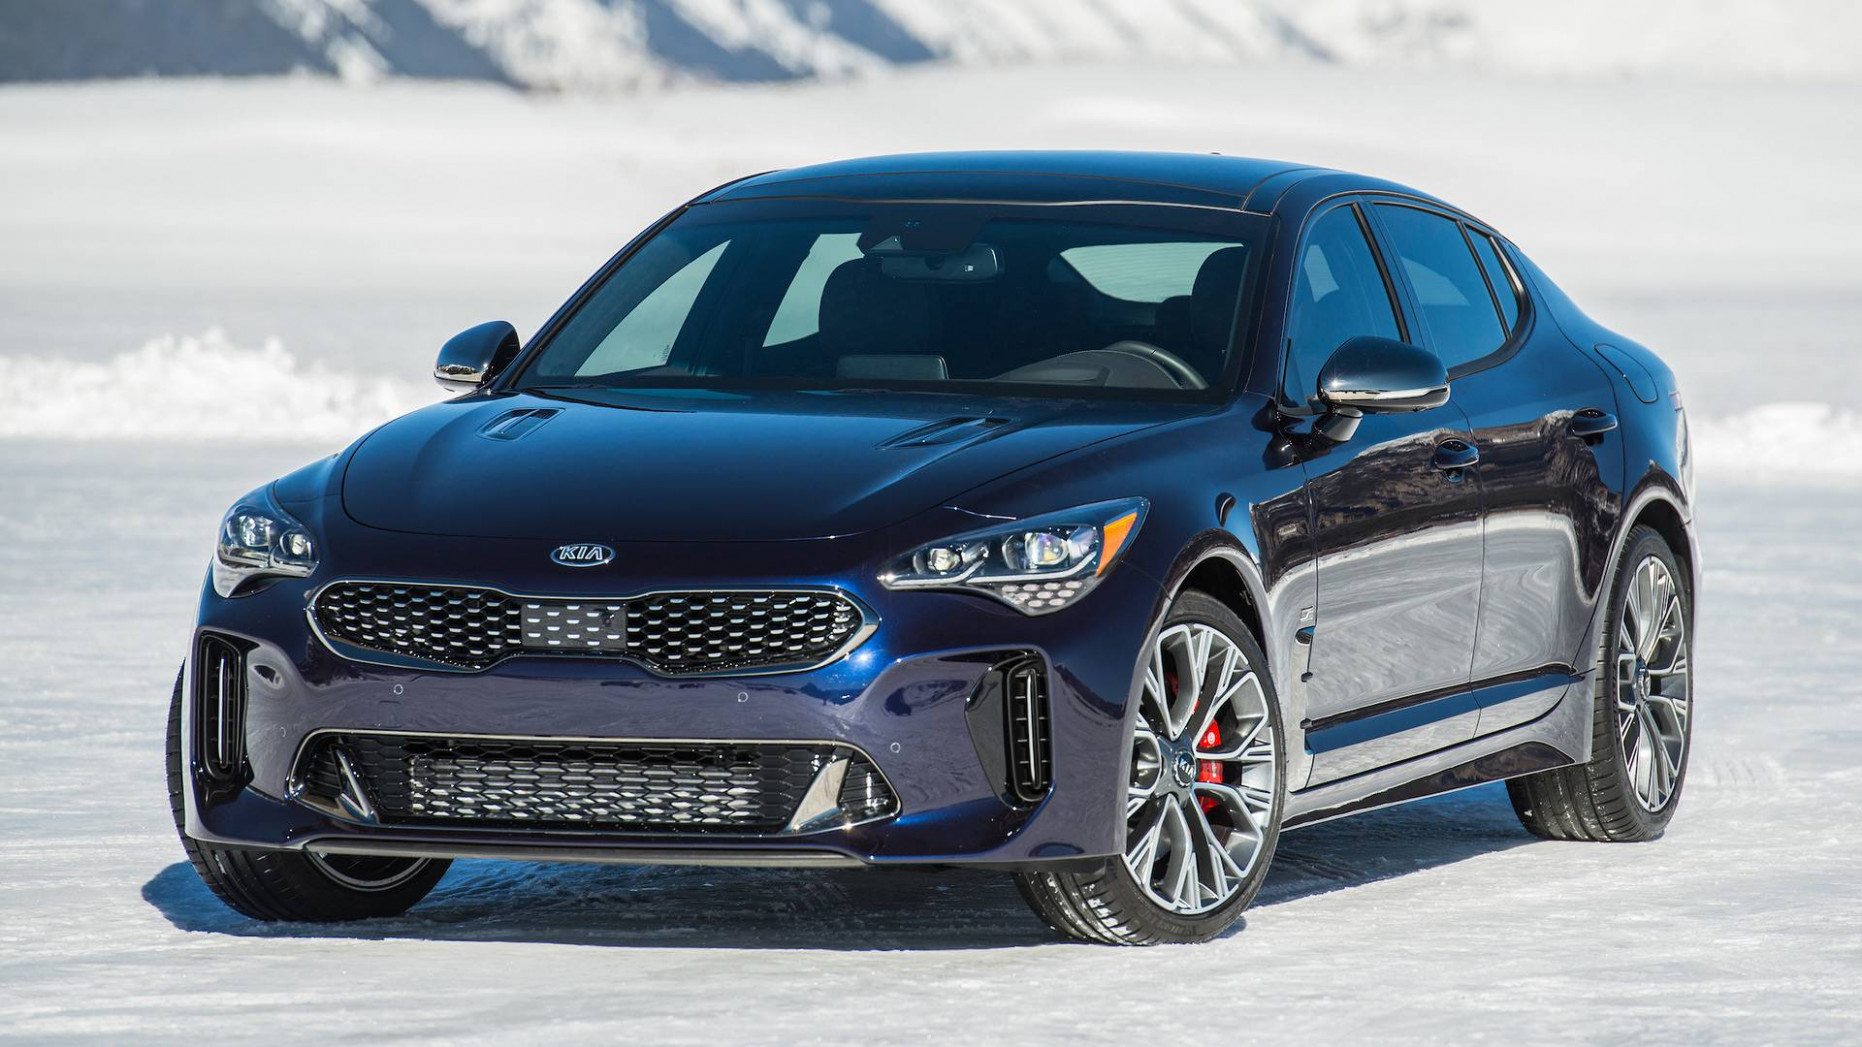 Performance and New Engine 2022 Kia Stinger Gt